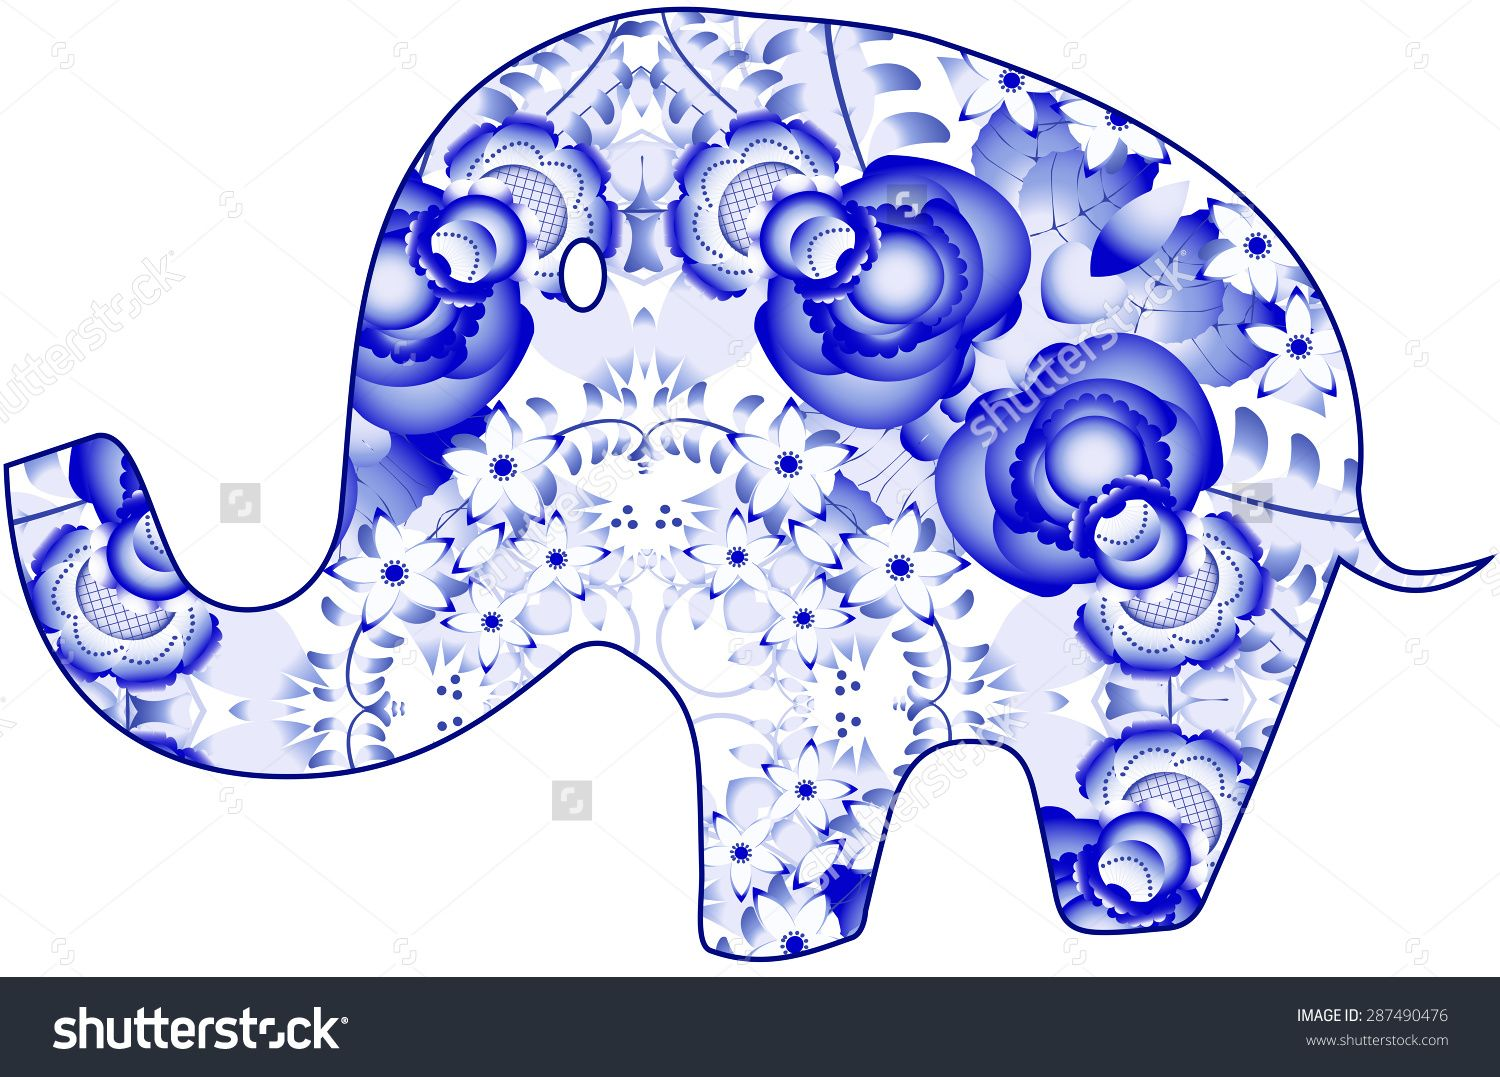 Gzhel folk elephants